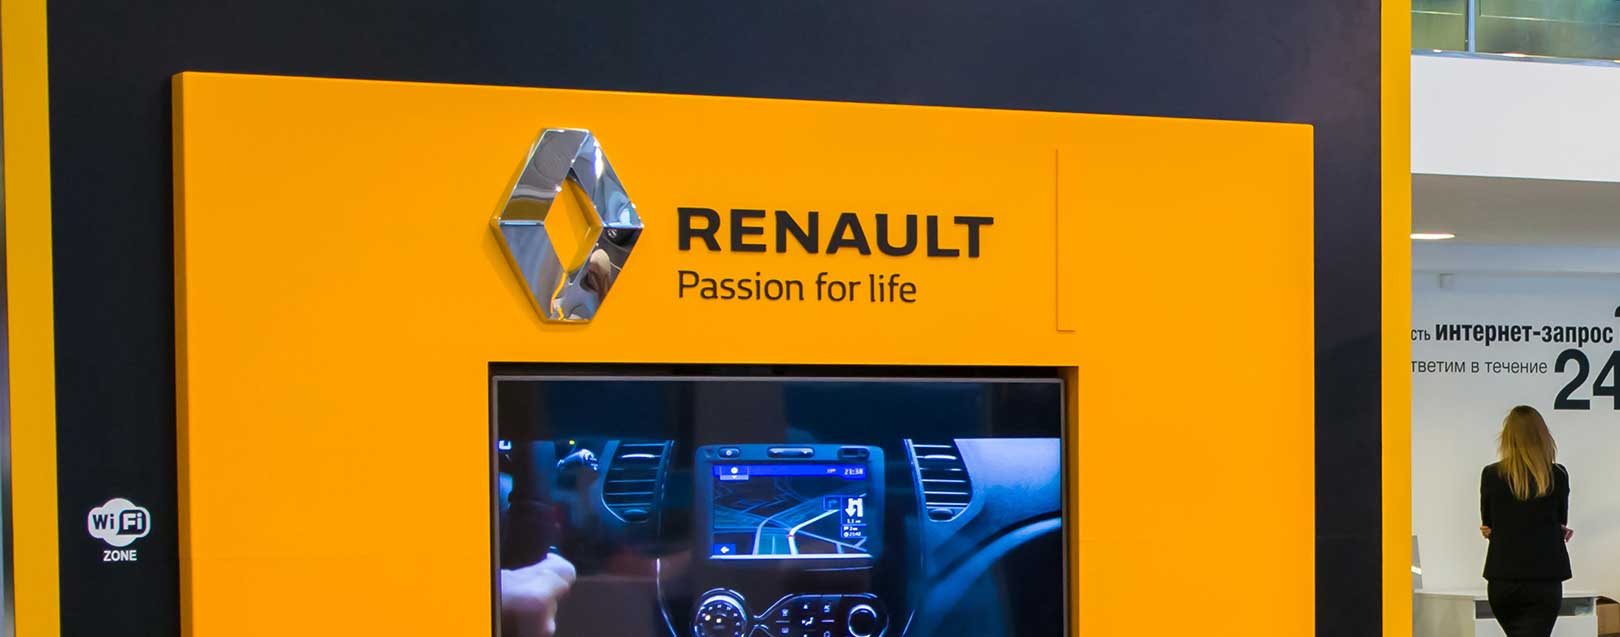 Renault and Iran enter into one of the biggest ever car deals, to produce 150,000 cars